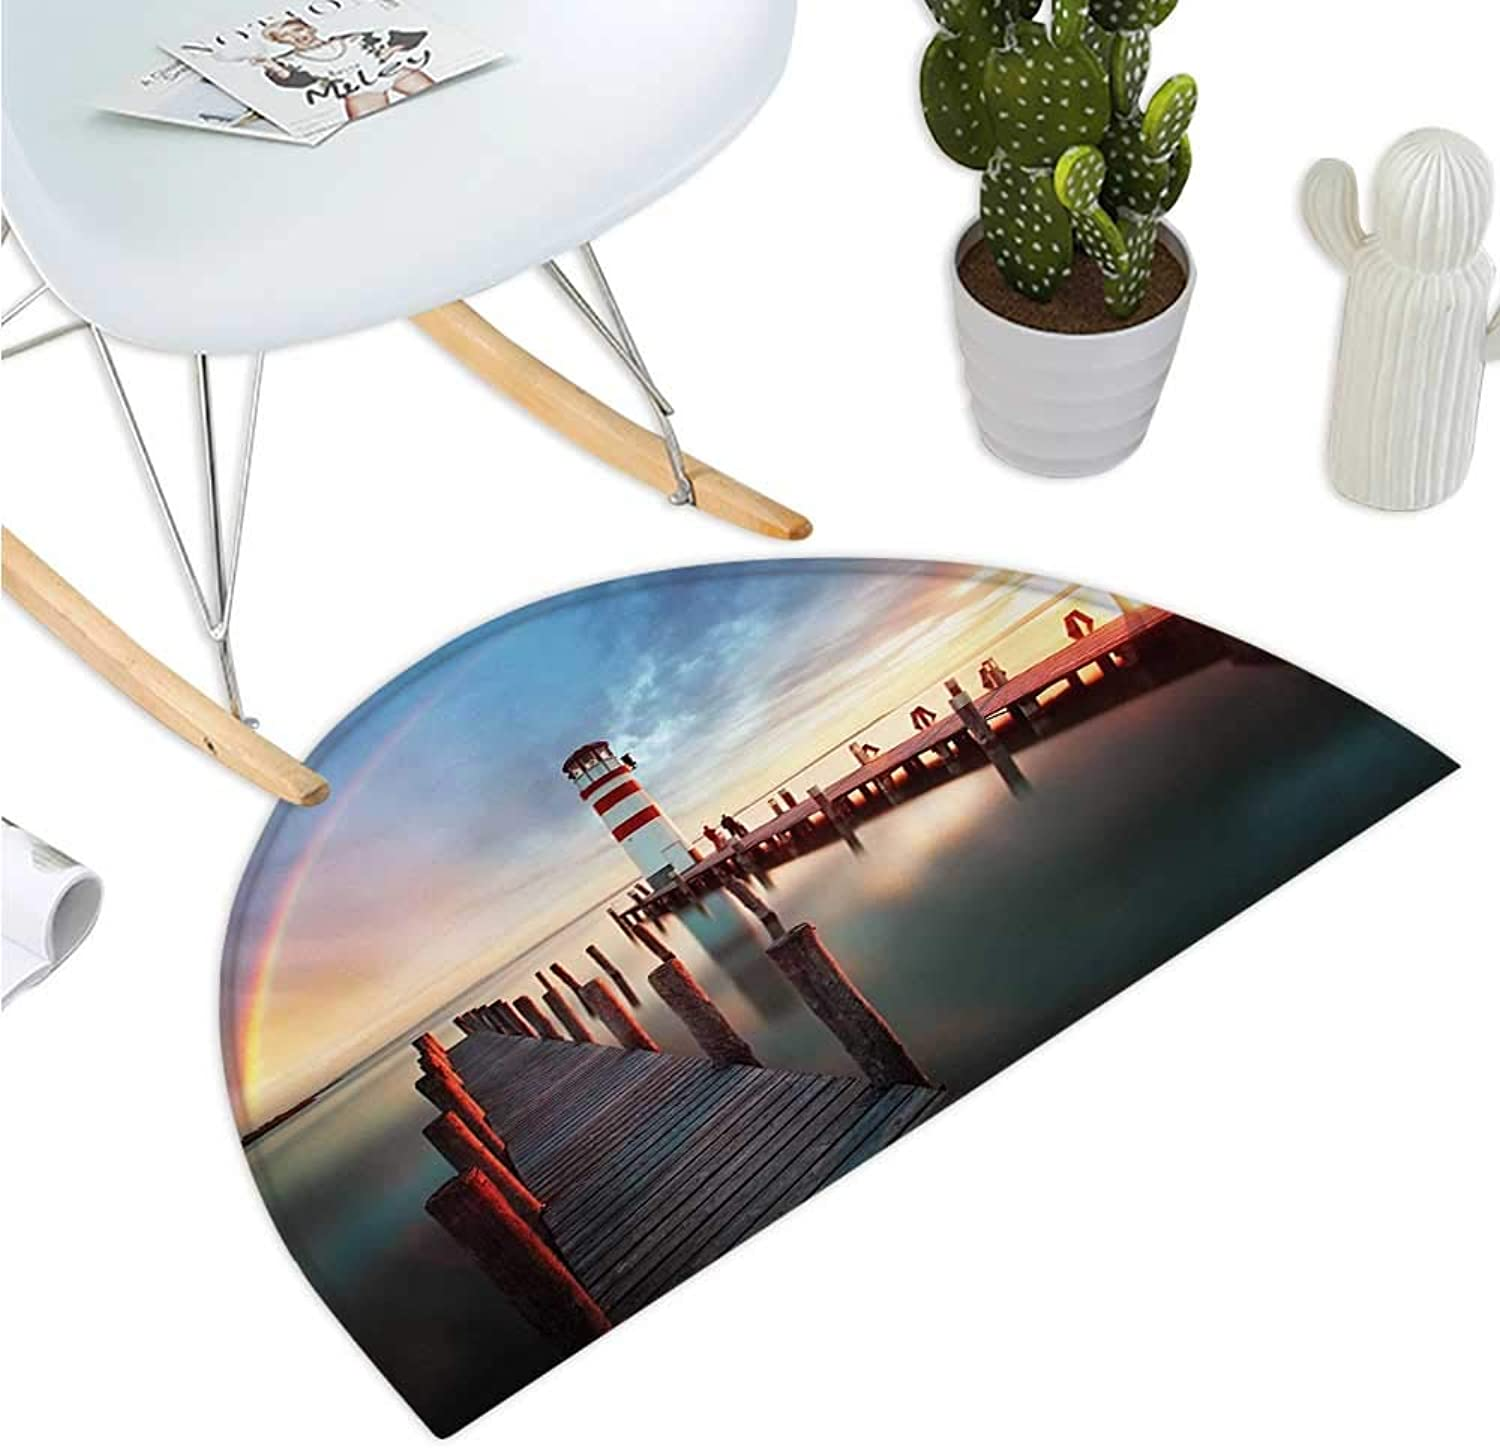 Lighthouse Semicircle Doormat Sunset at Seaside Wooden Docks Lighthouse Clouds Rainbow Waterfront Reflection Halfmoon doormats H 35.4  xD 53.1  Multicolor